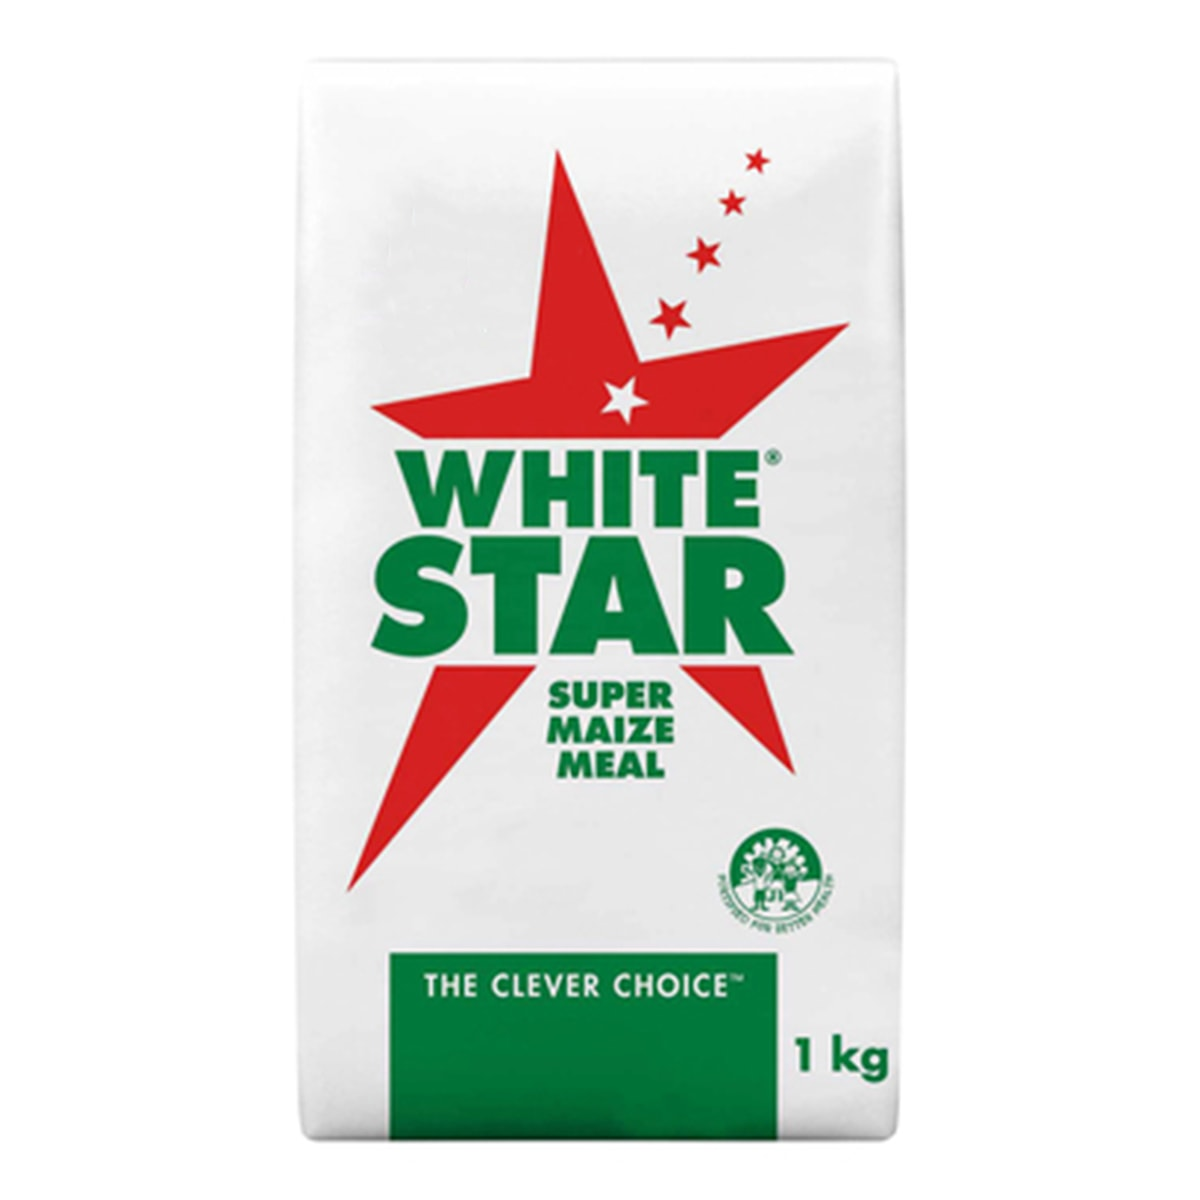 Buy Star of Africa Super Maize Meal - 1 kg